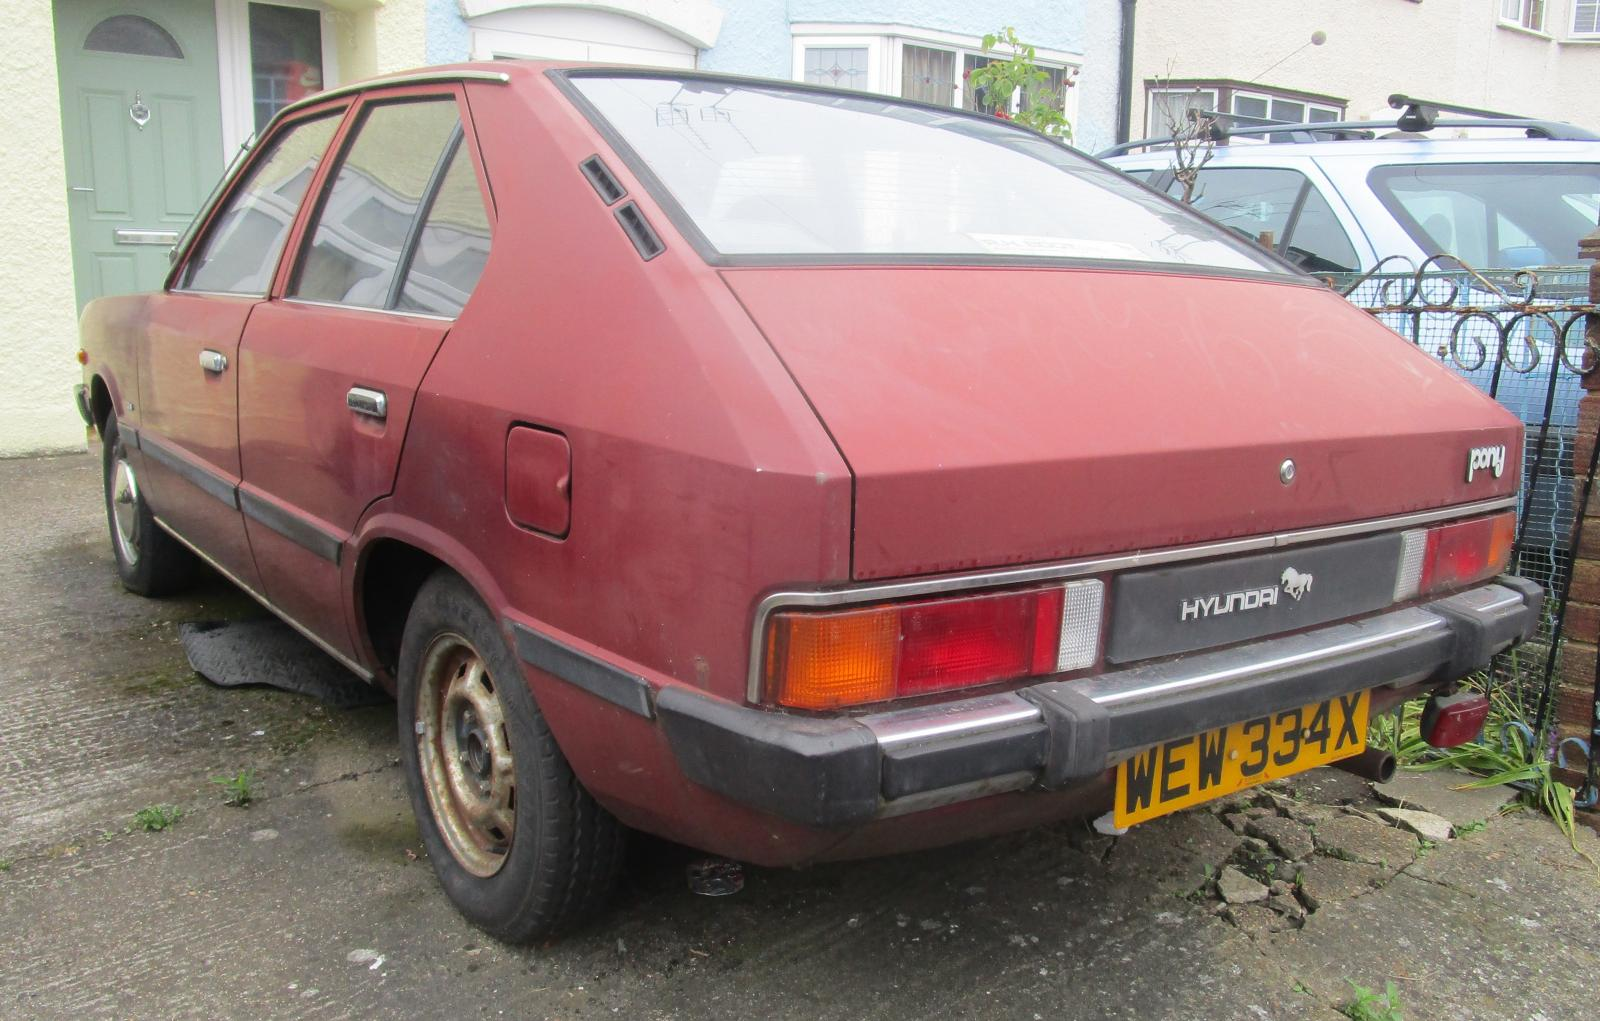 1982 Hyundai Pony GLS 4 door.JPG